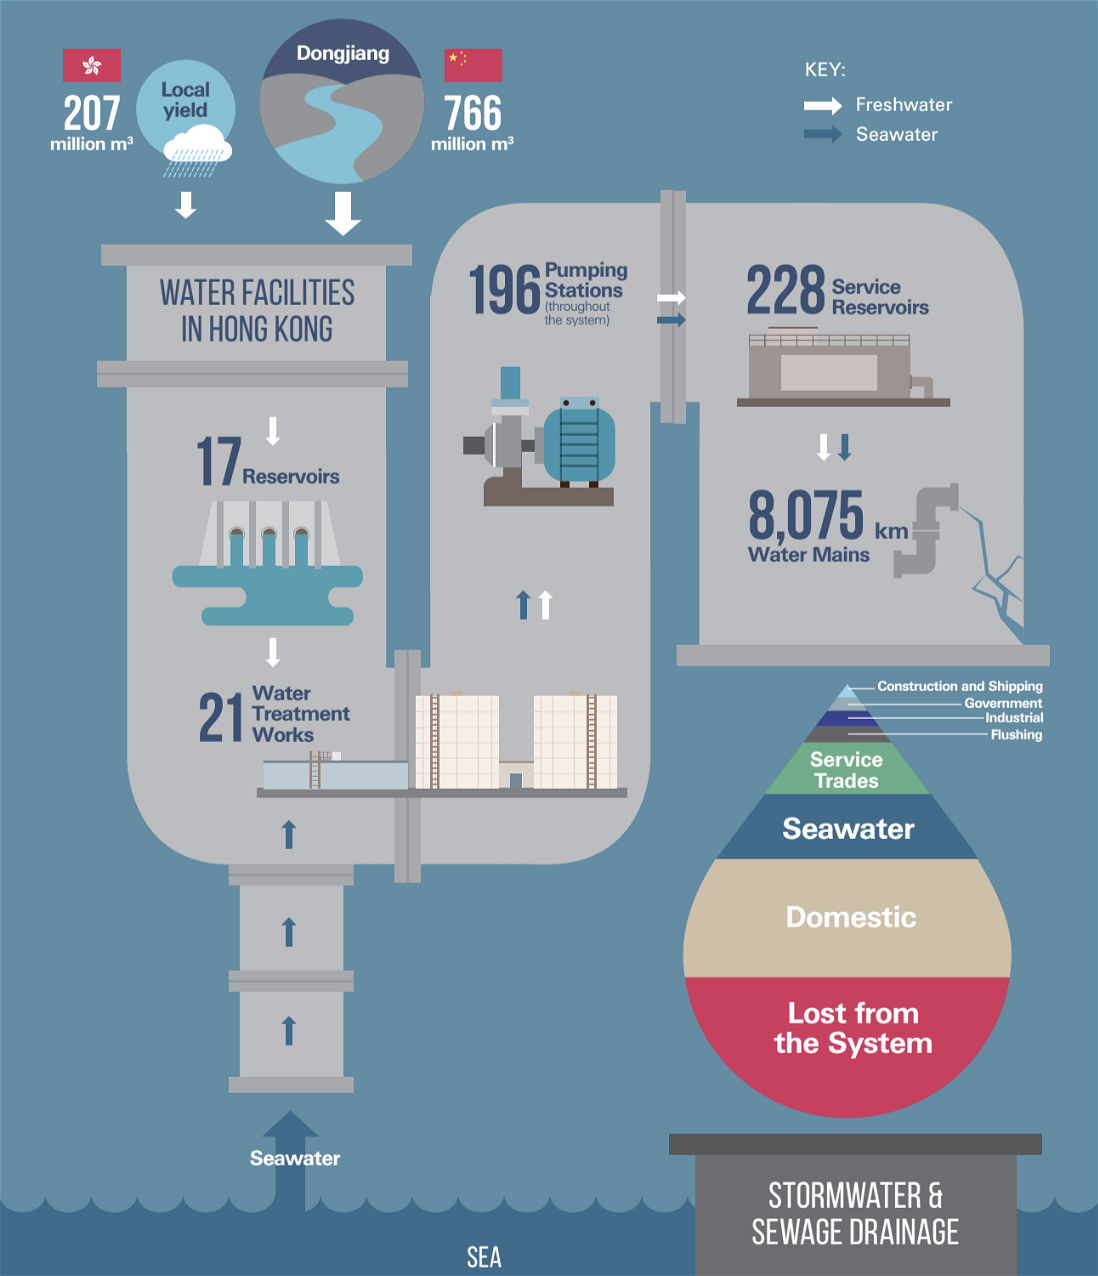 Generalised overview of Hong Kong's water supply